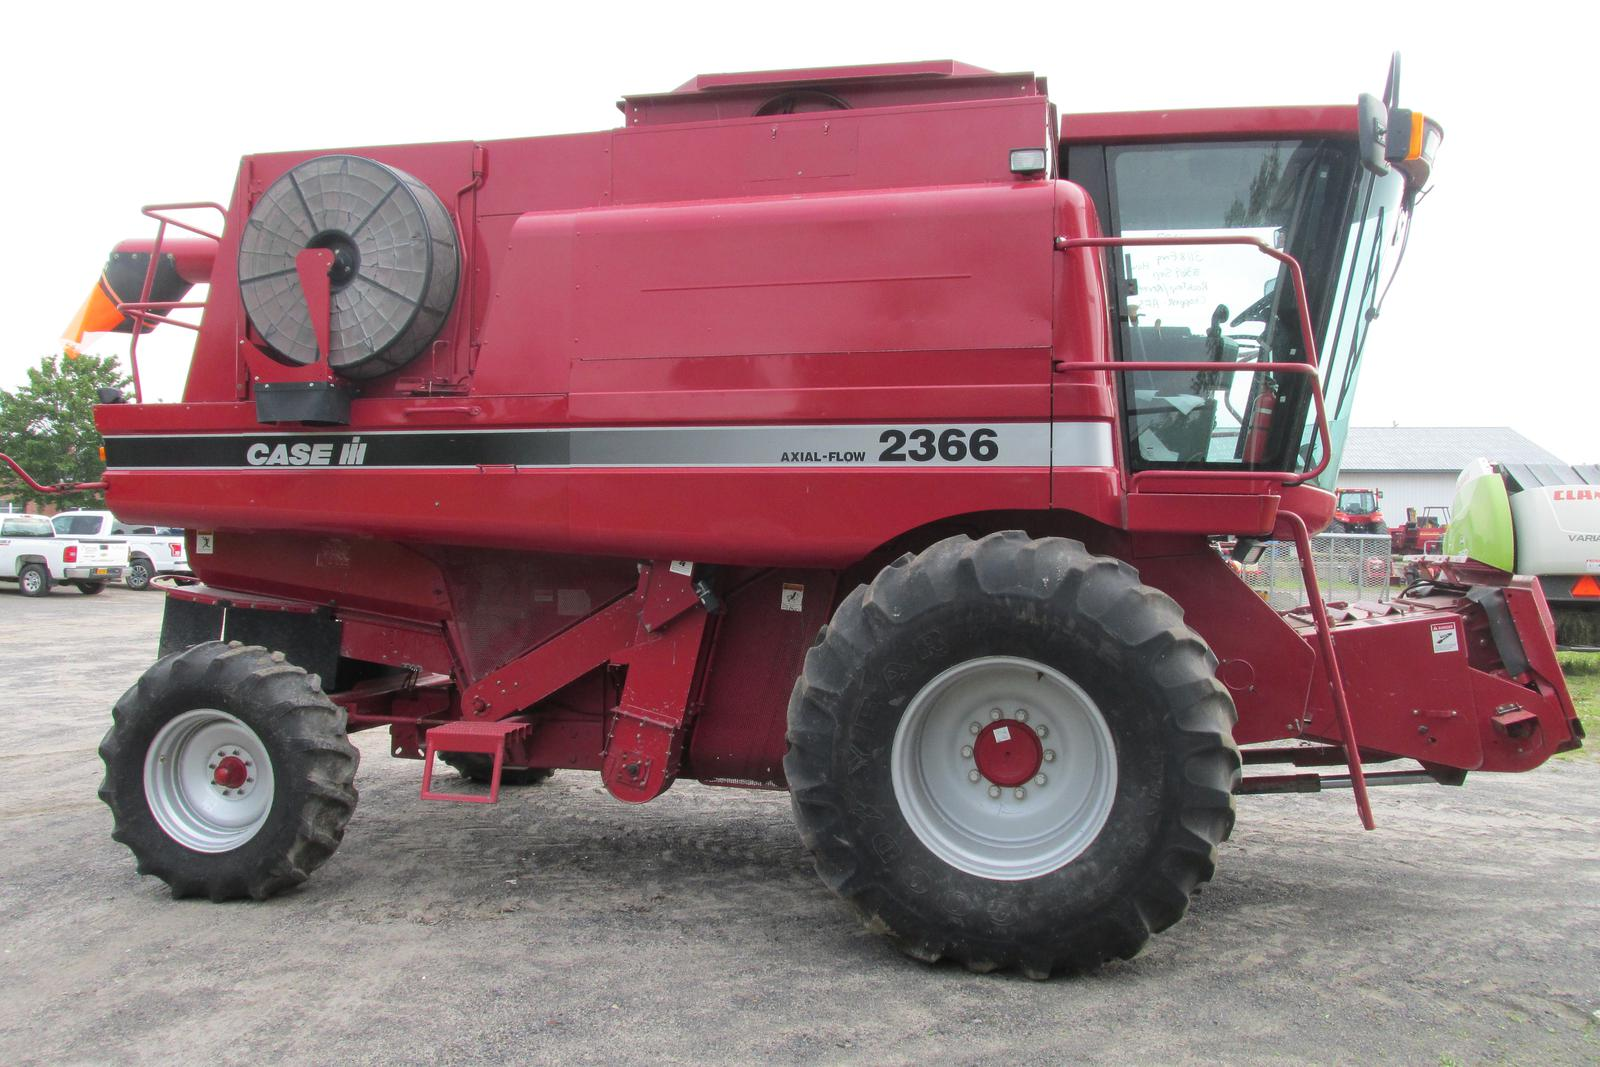 2003 Case IH 2366 AXIAL FLOW COMBINE for sale in Fultonville, NY | Randall  Implements Co. Inc. (518) 853-4500